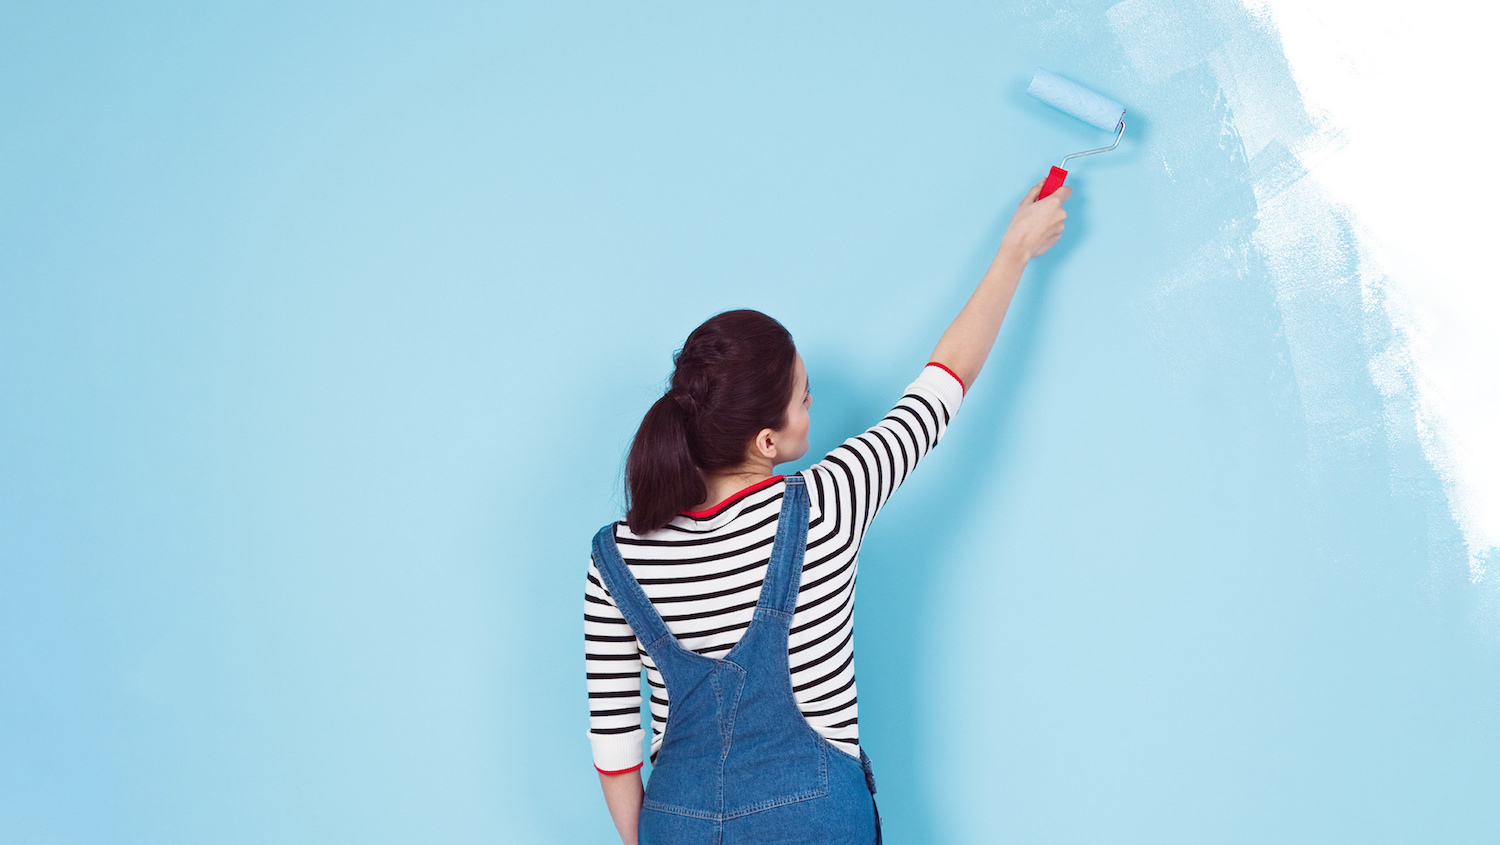 woman painting wall blue